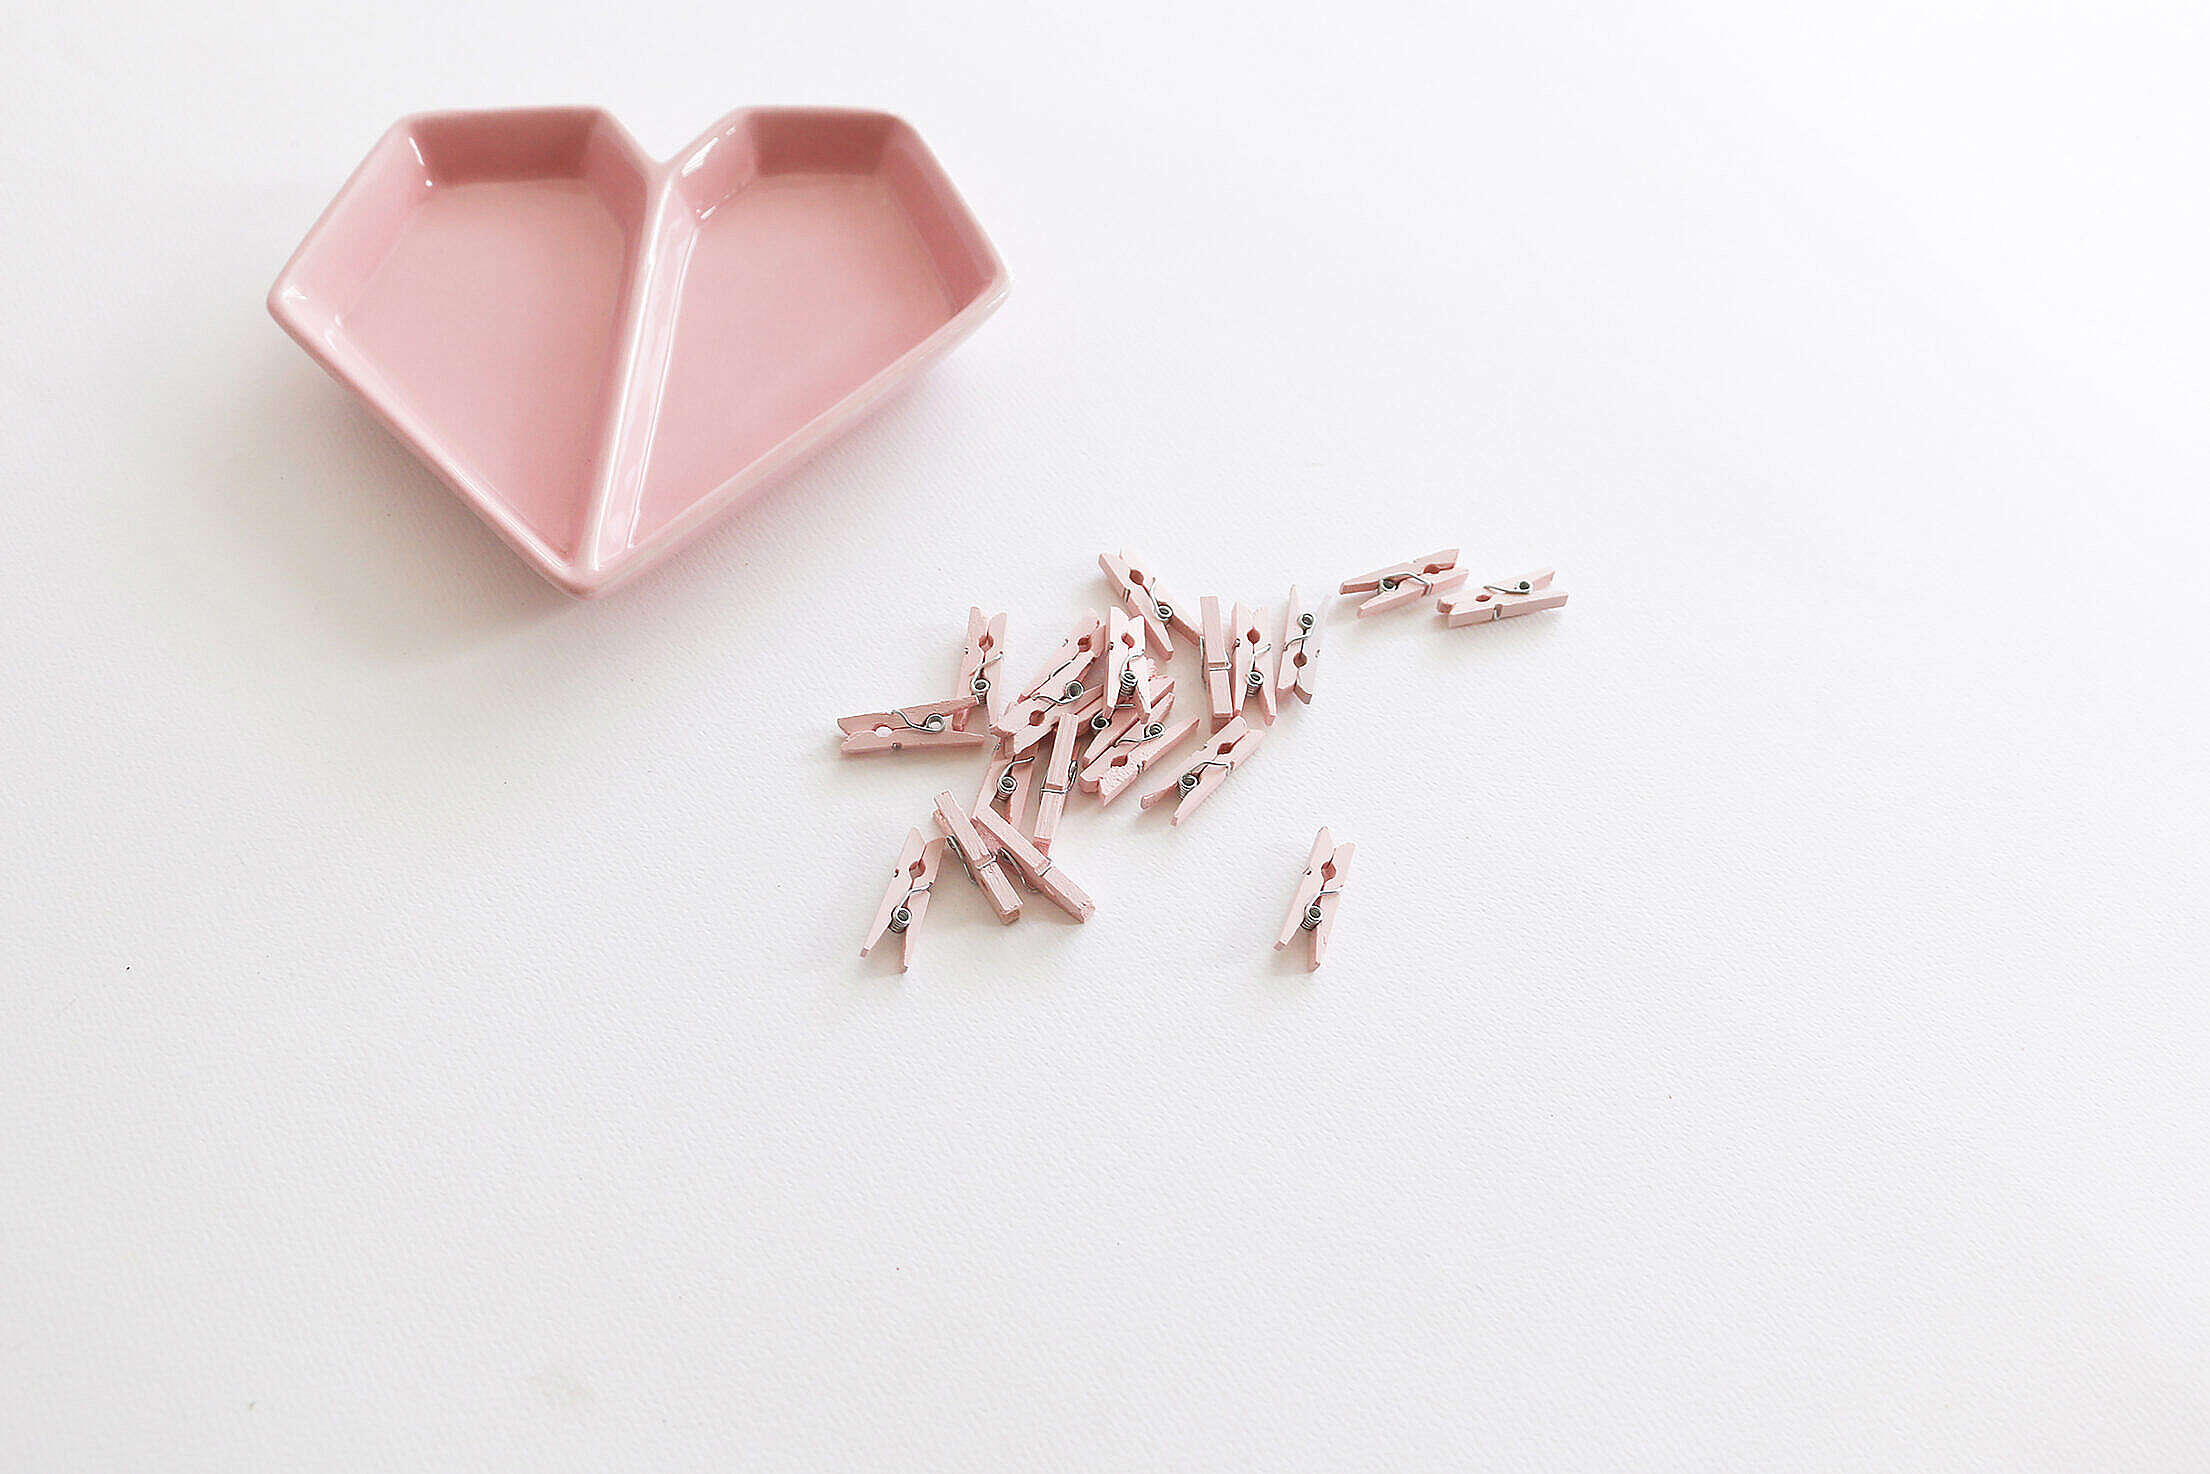 Pink Heart-Shaped Plate with Mini Wooden Pegs Free Stock Photo